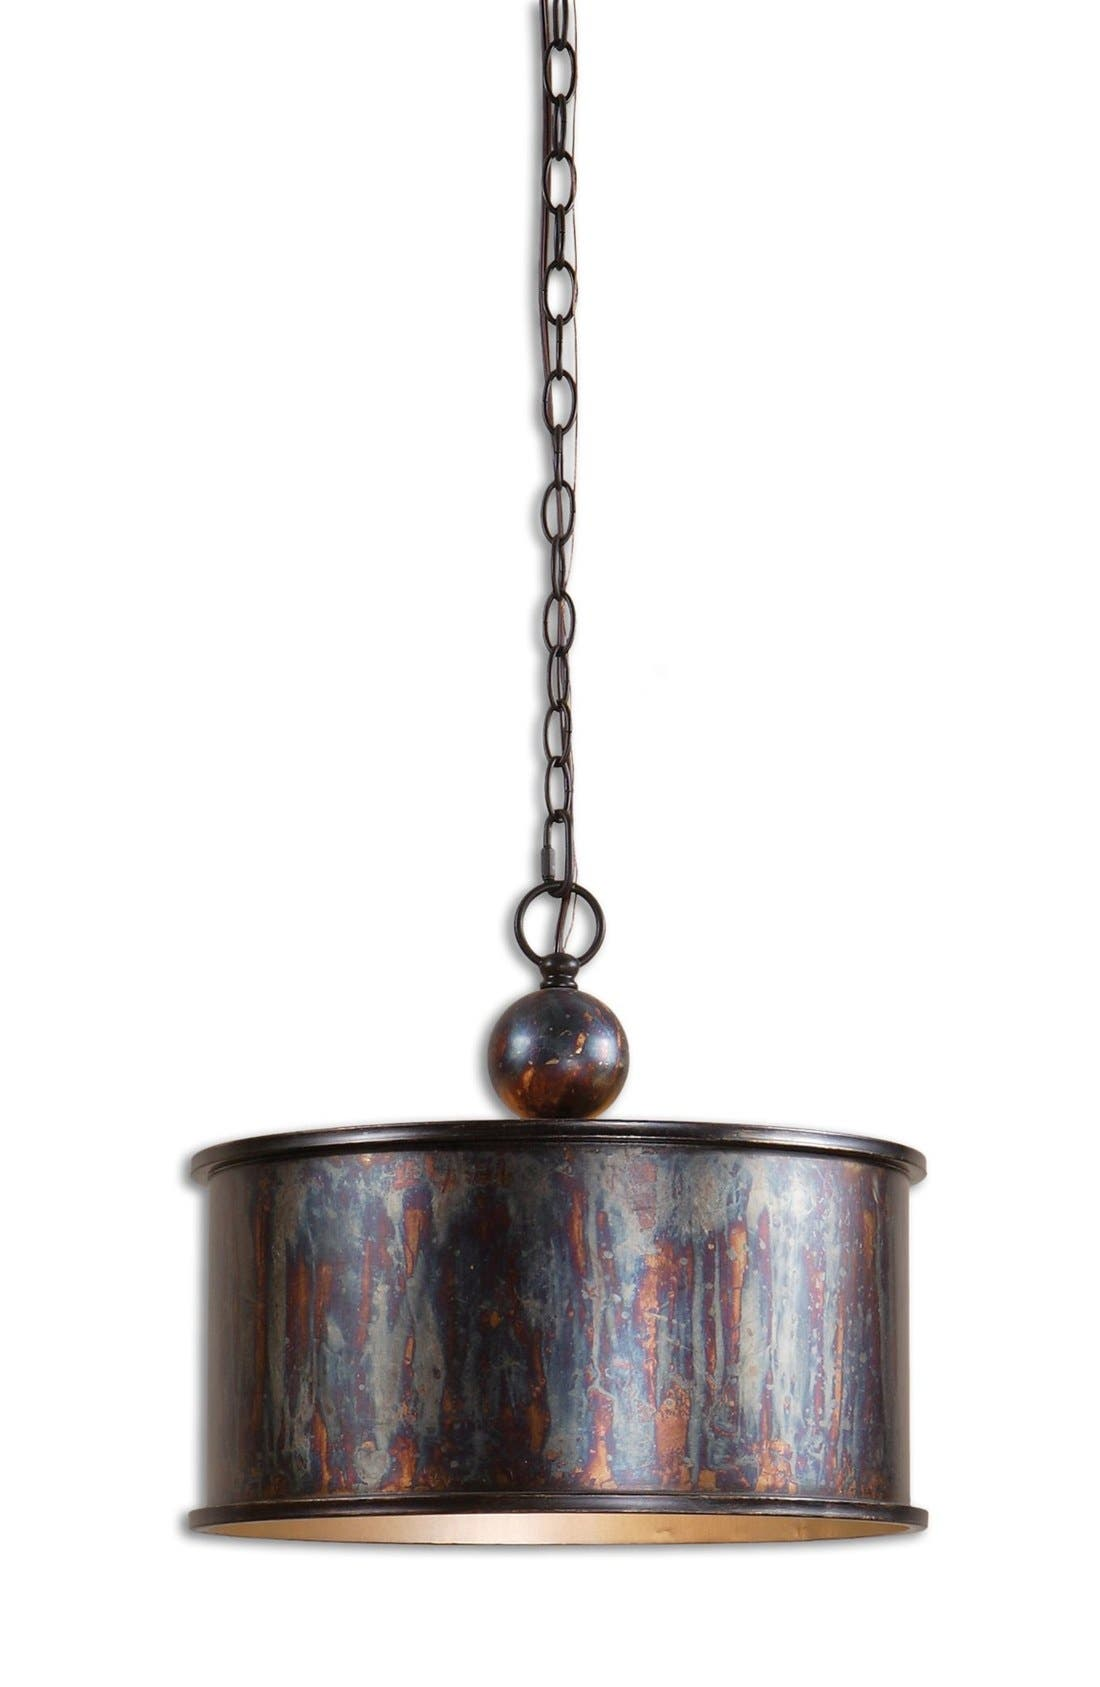 Alternate Image 1 Selected - Uttermost 'Albiano' Bronzed Pendant Light